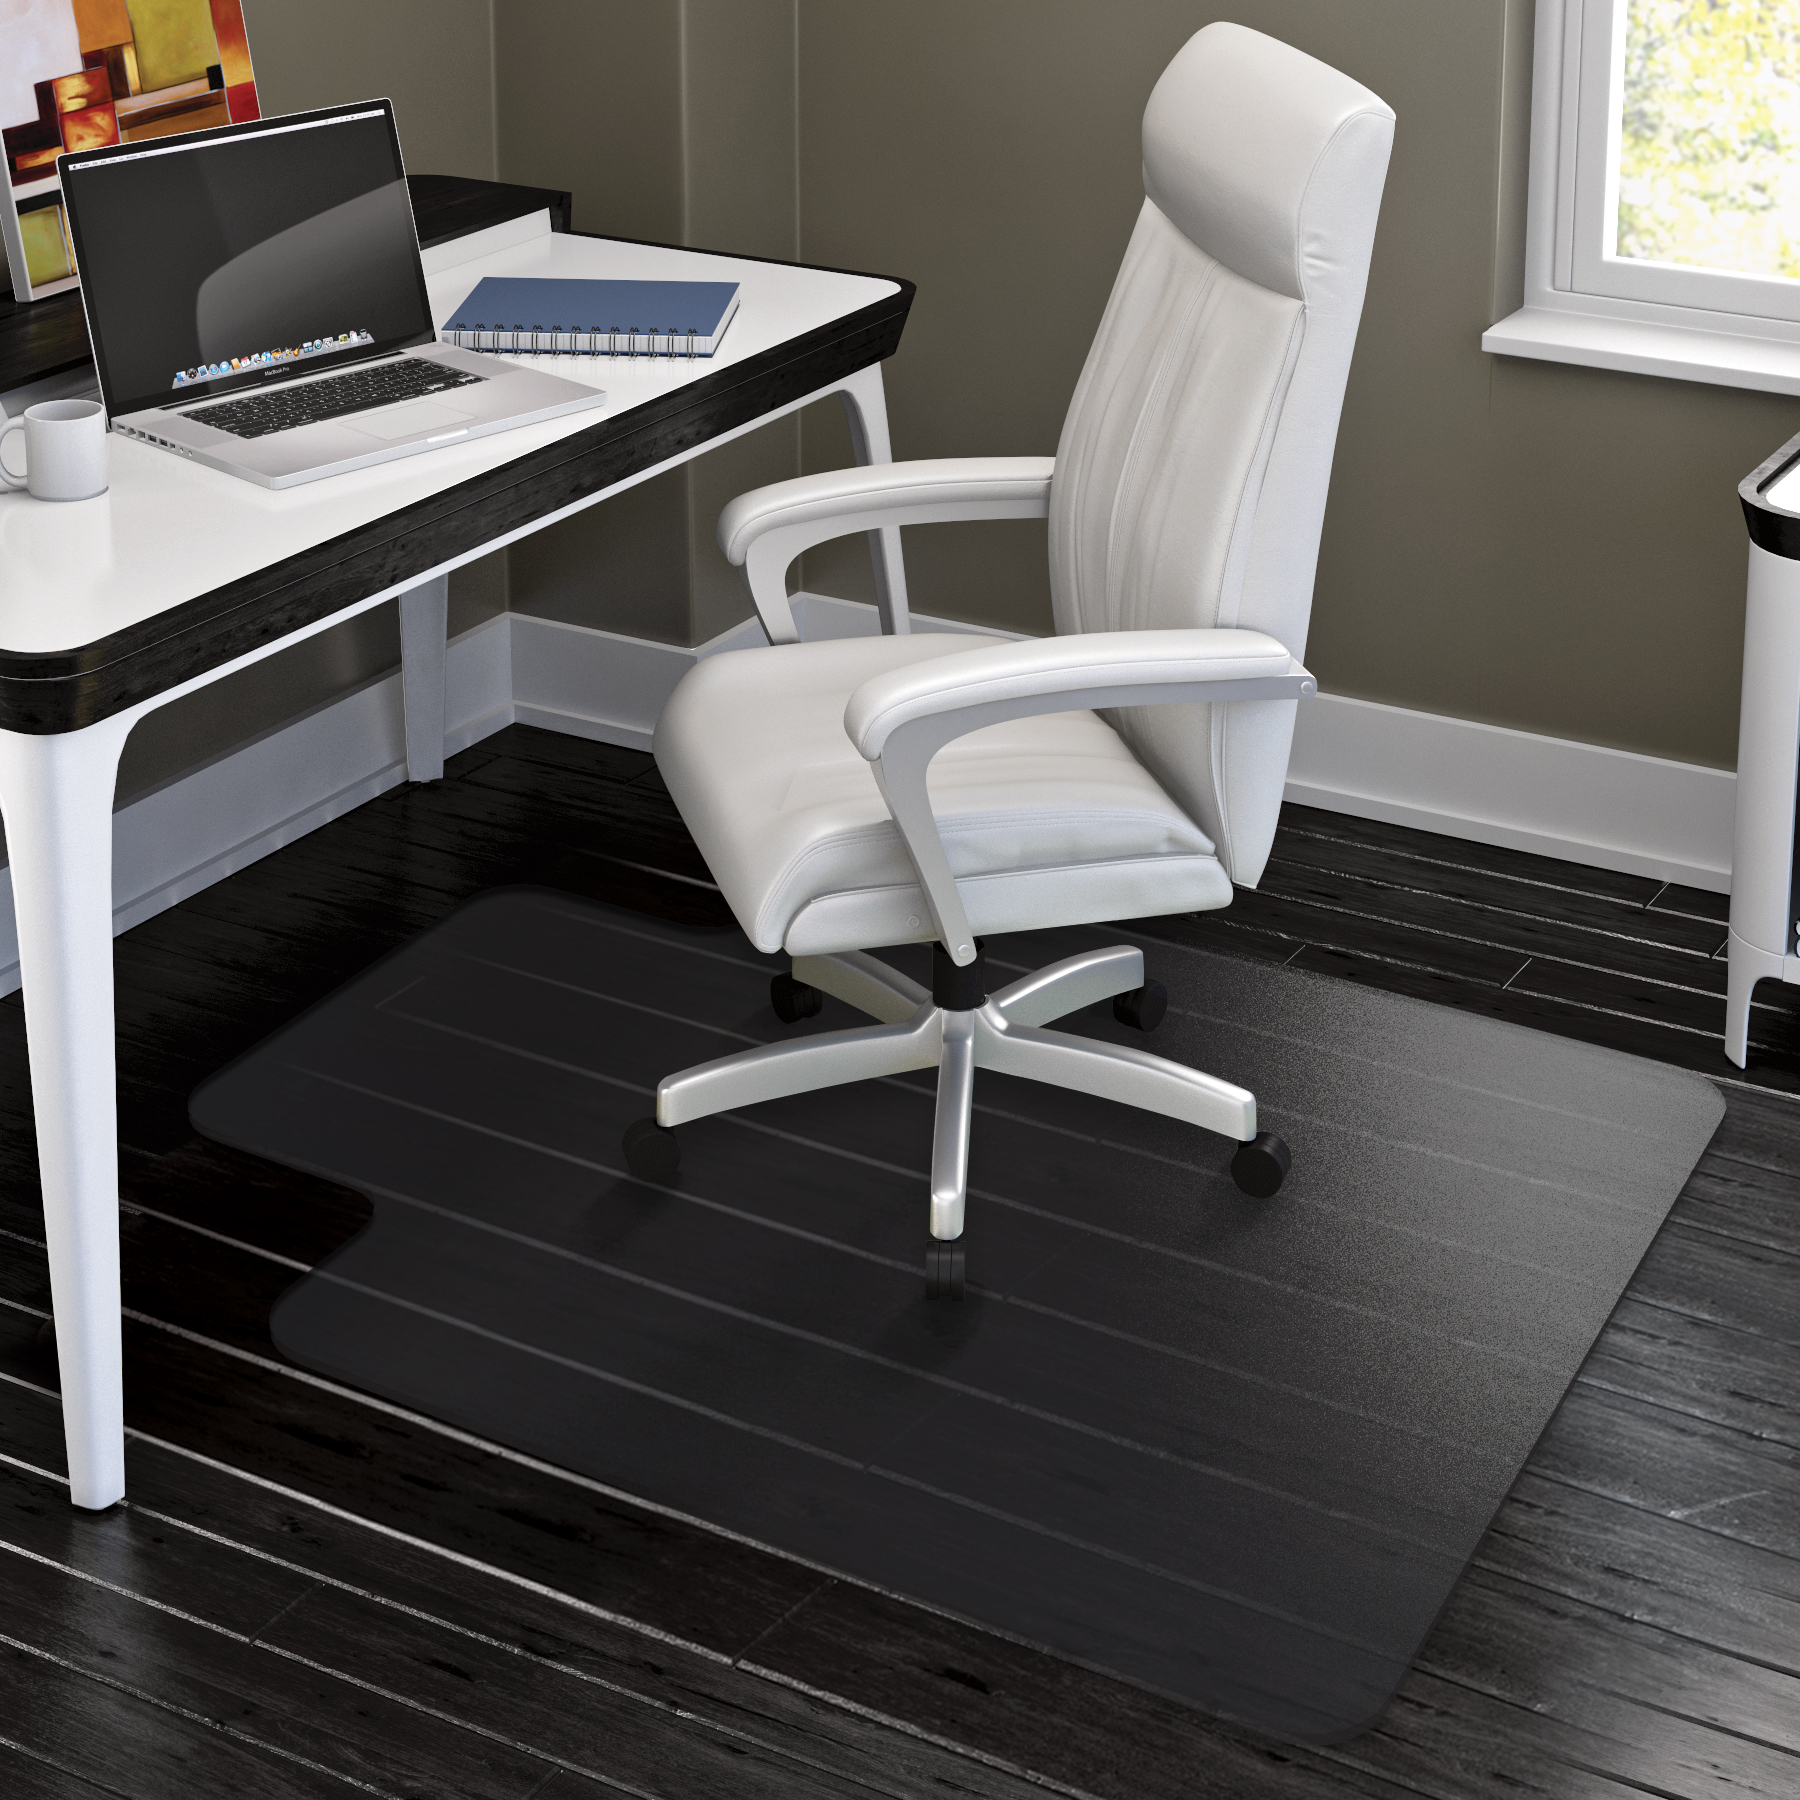 formydesk original chairmat pile mats lip office lorell floor standard com products low economy